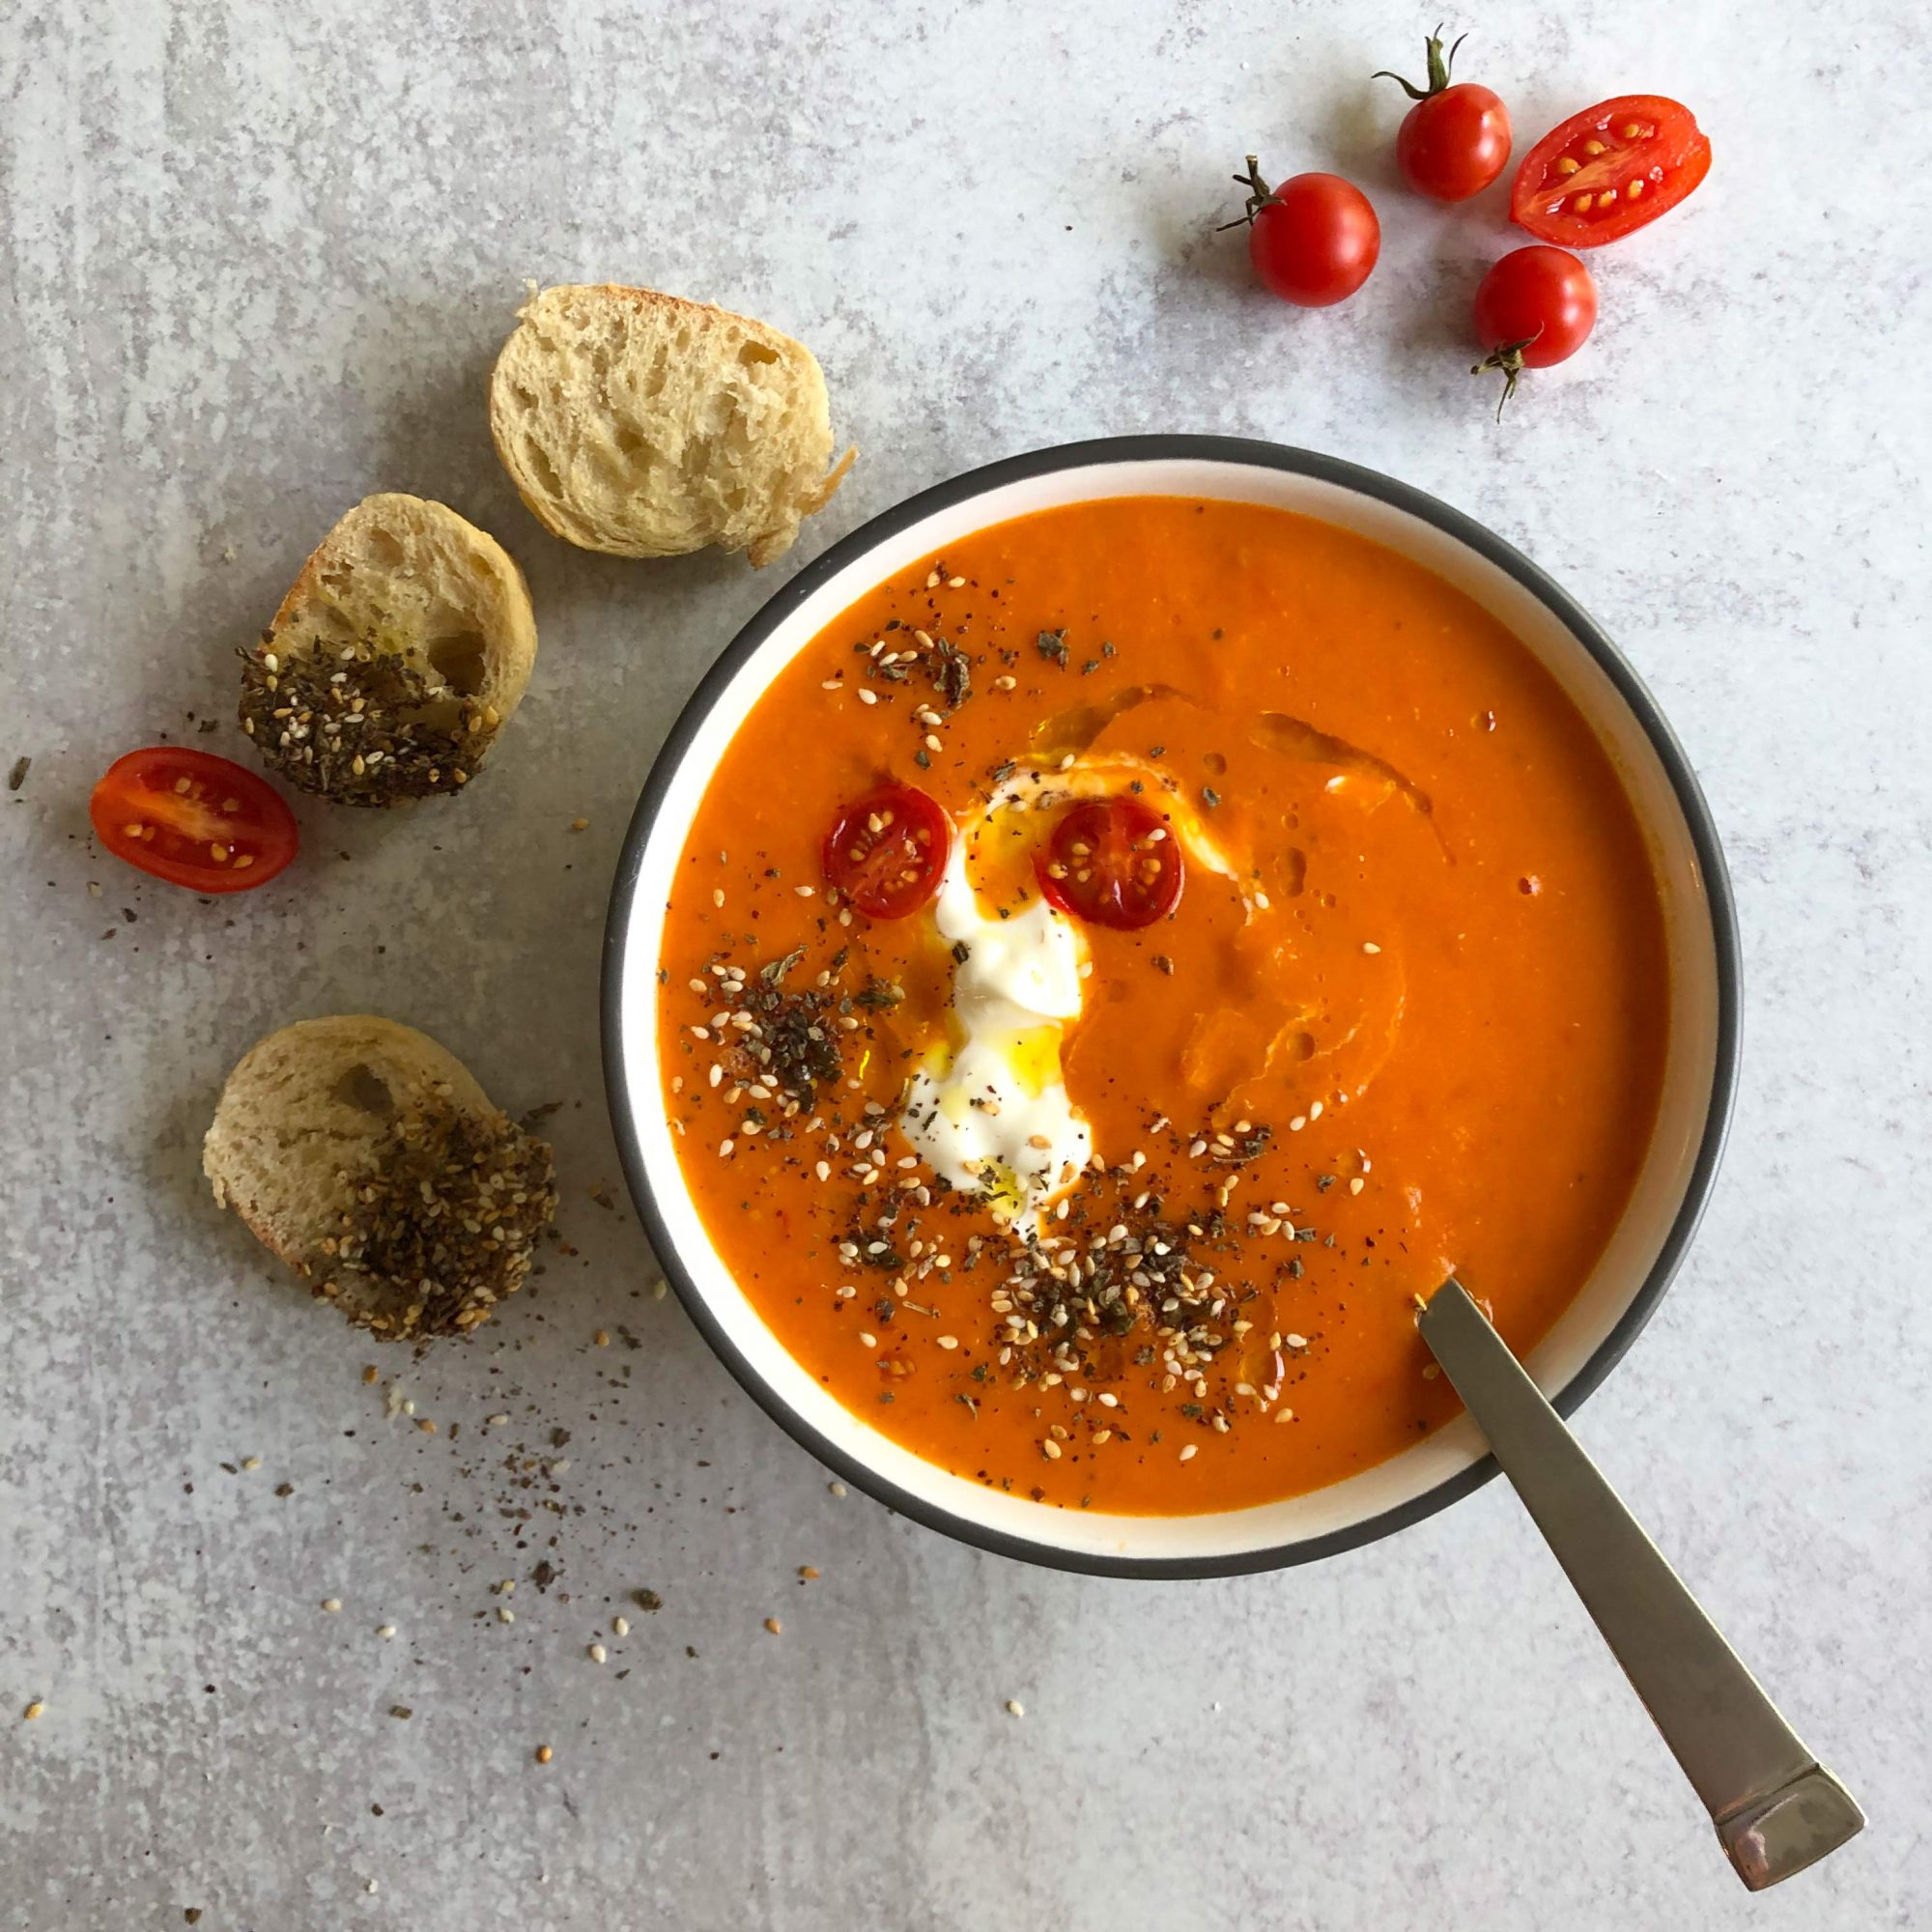 Tomato-Soup-with-Za_atar-Dukkah-Croutons-1